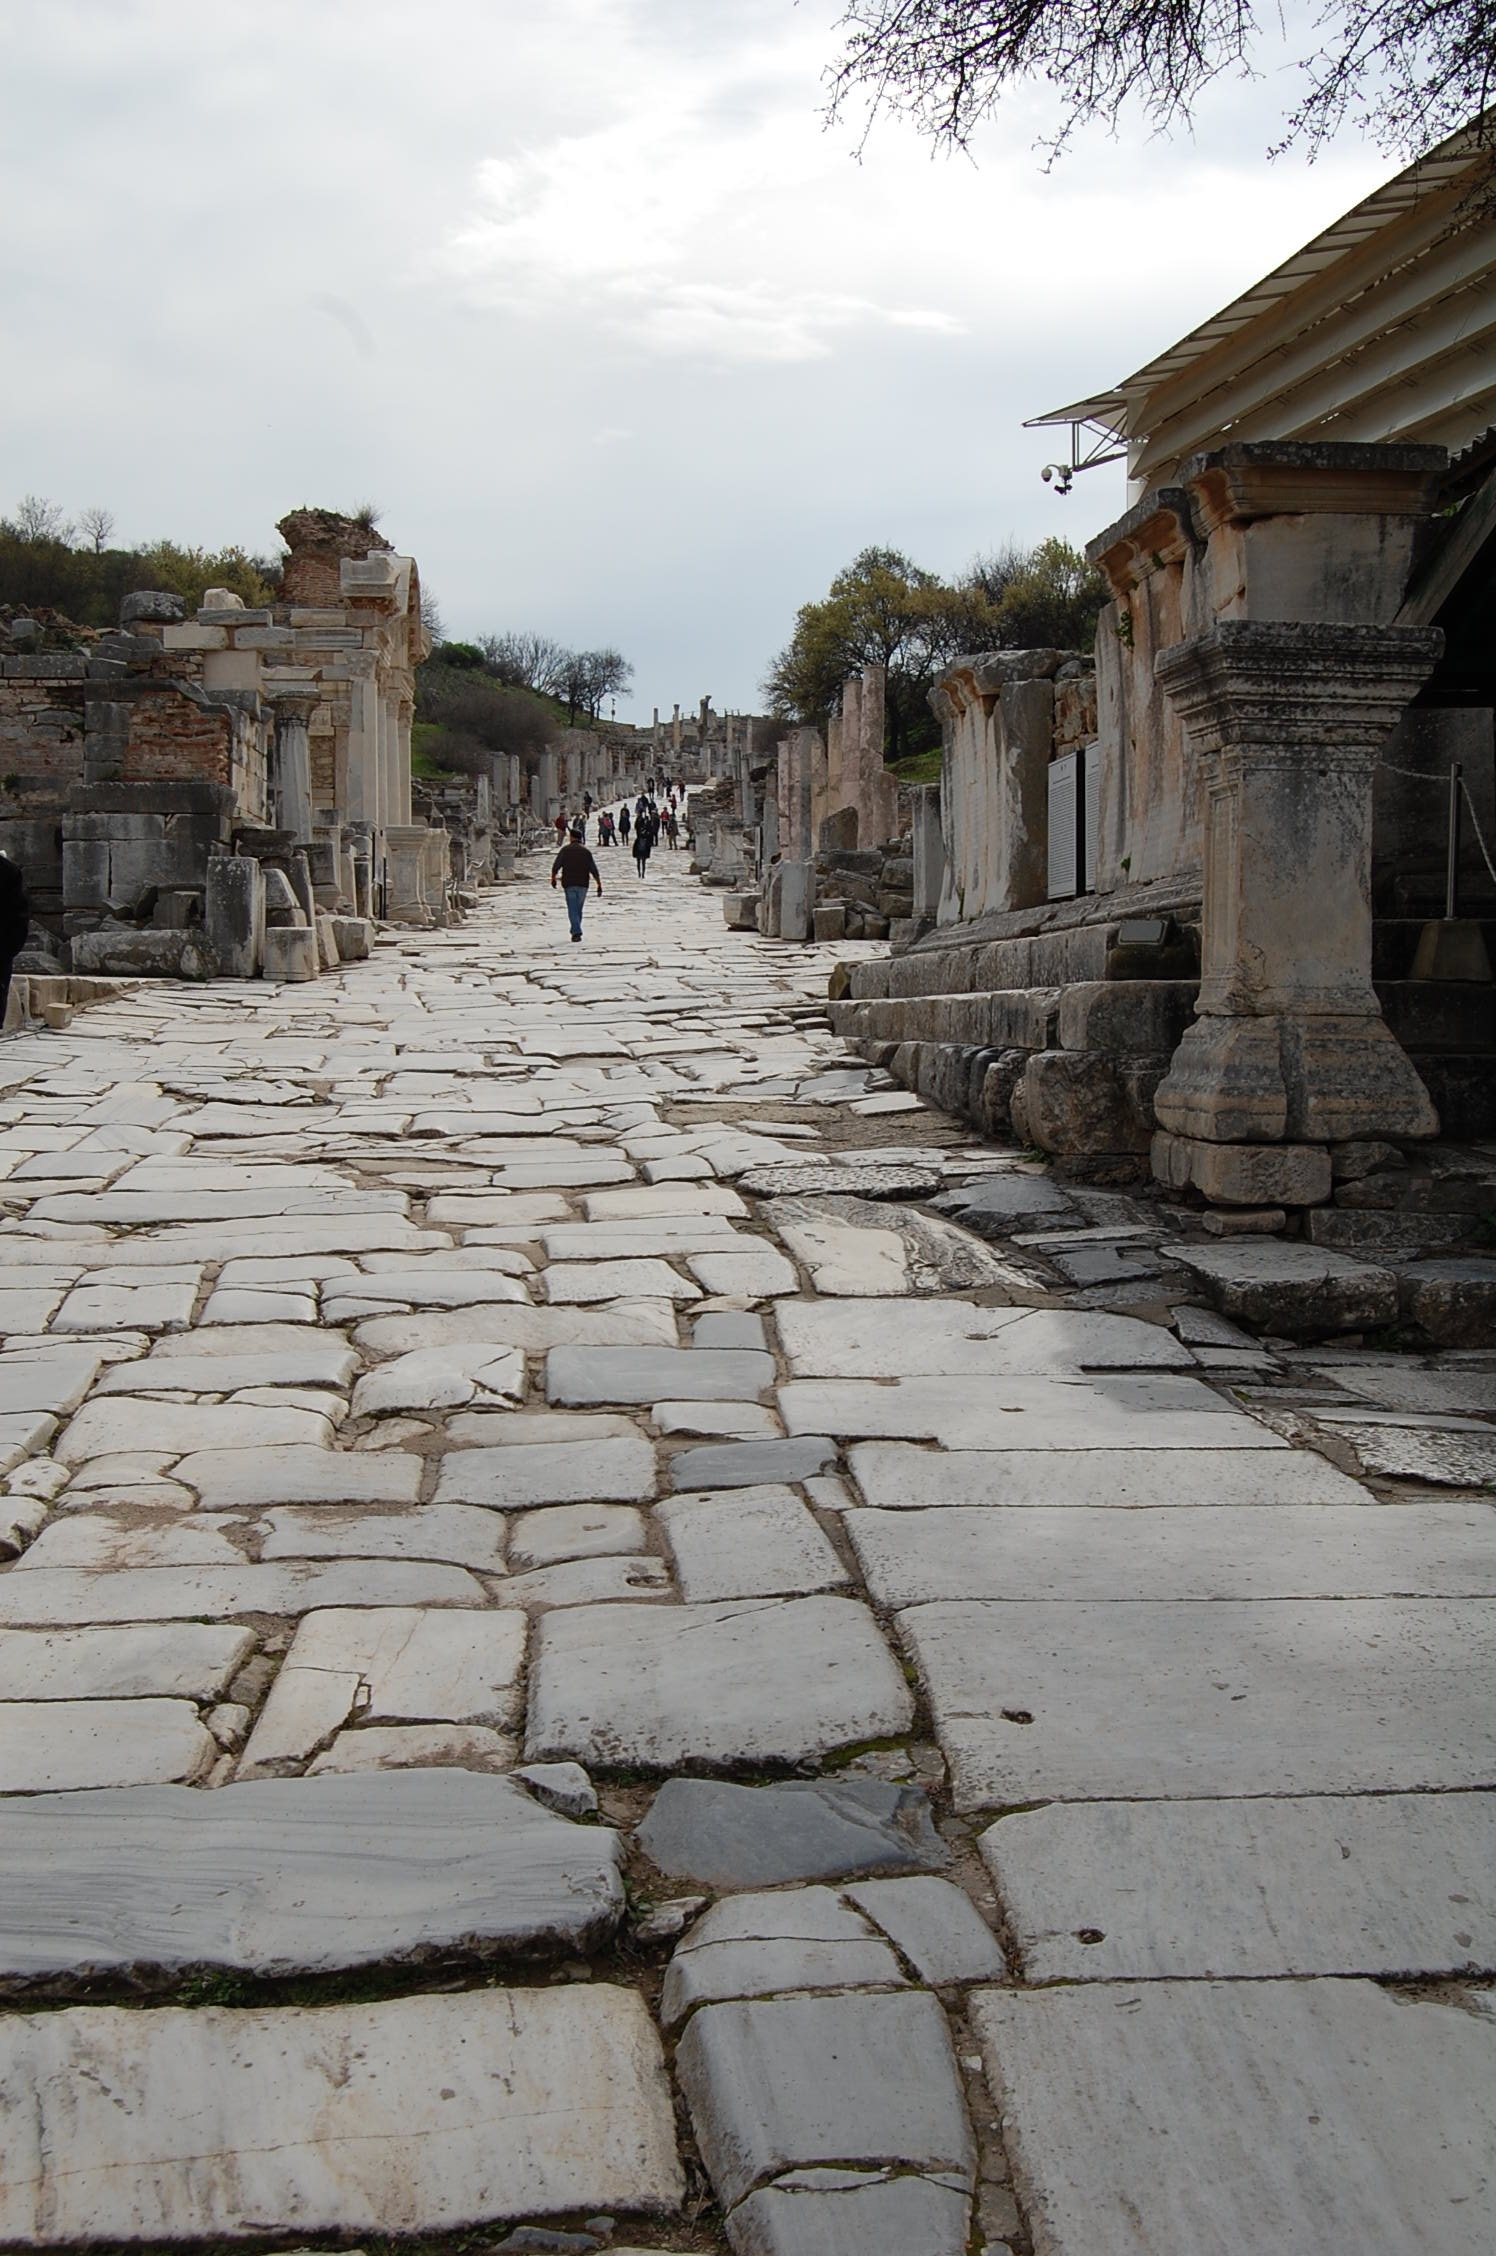 Streets of Ephesus - Ancient ruins, like passing moments of running thoughts..